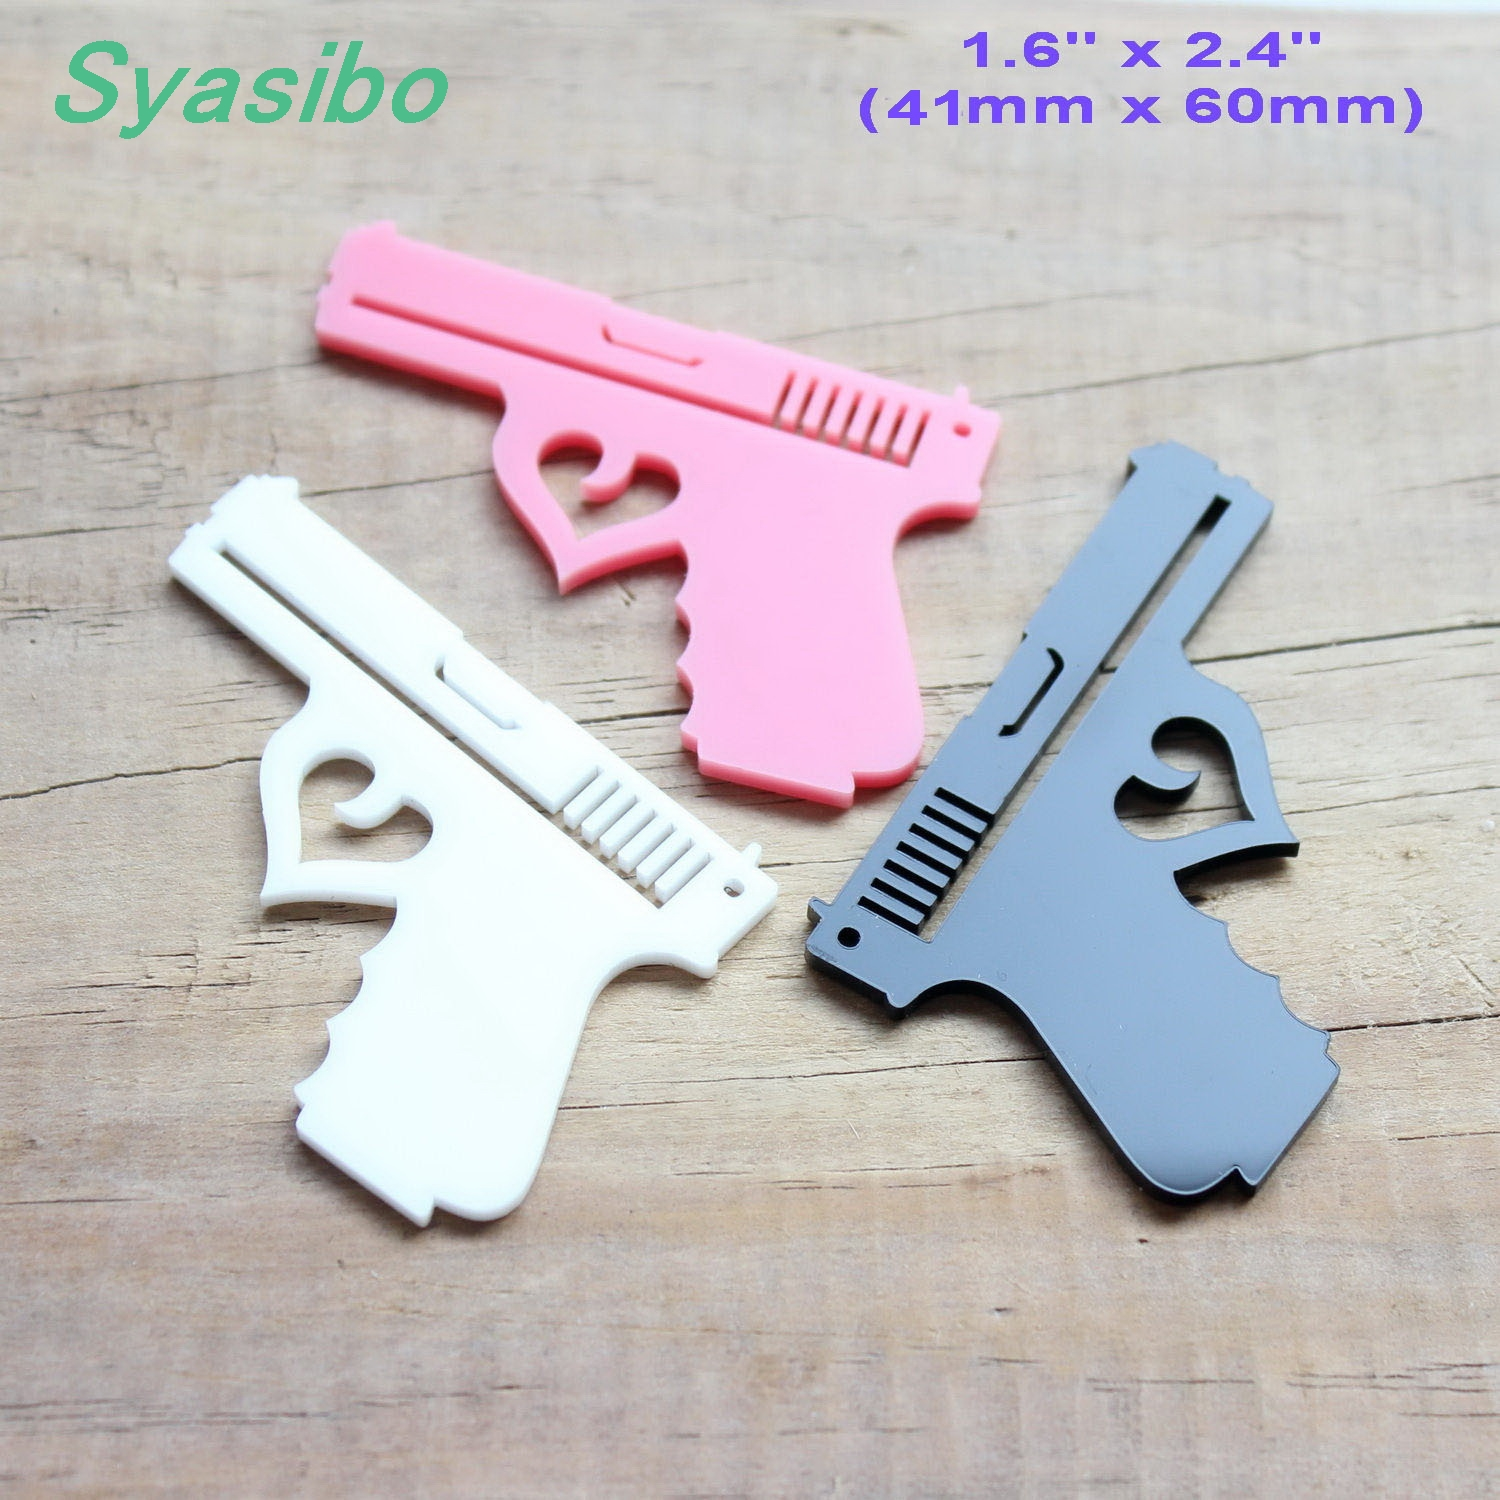 60mm Acrylic Gun Ornaments Earrings Accessories Laser Cutout 2.4